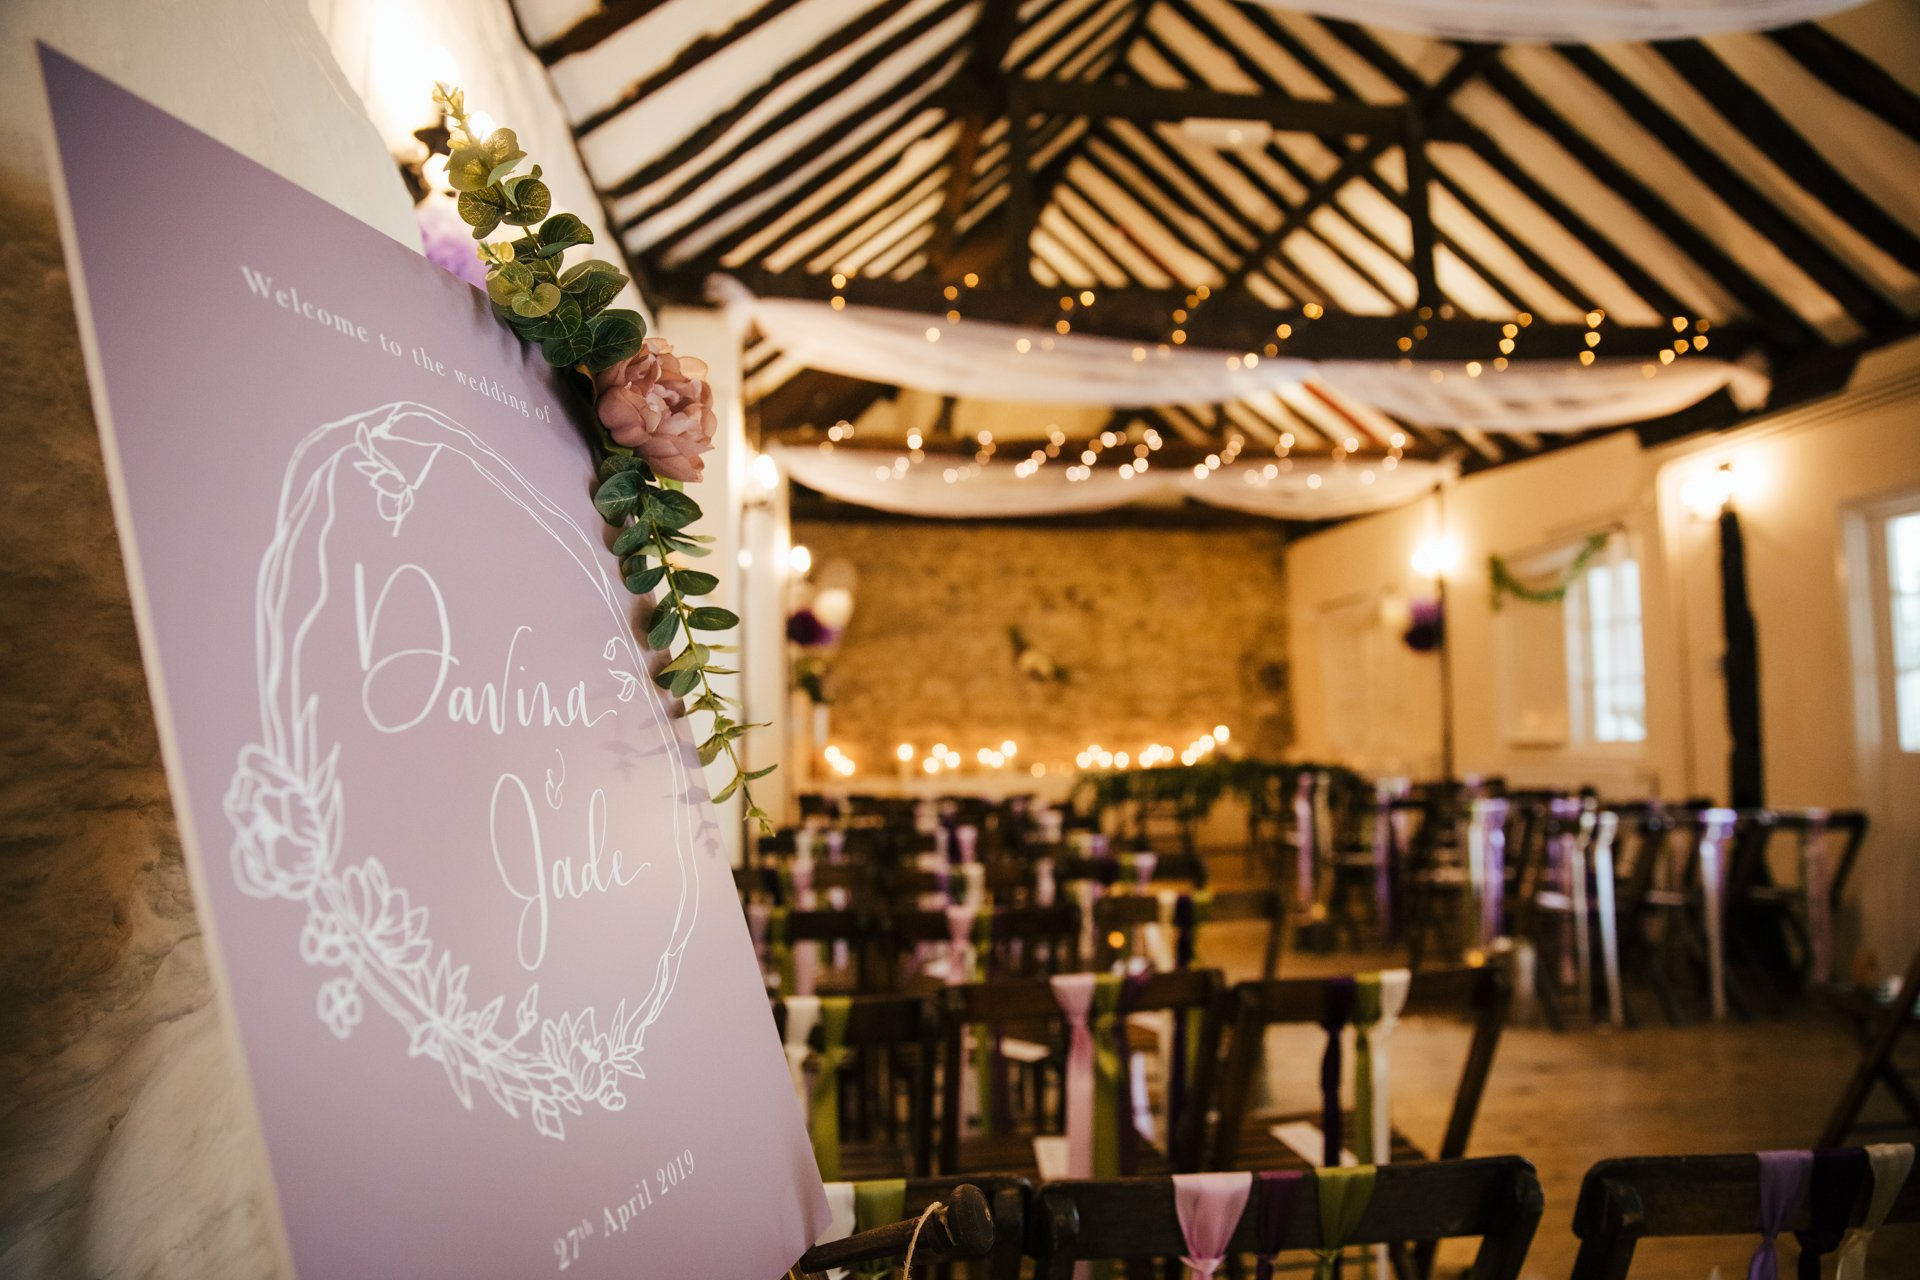 Welcome sign for Jade and Davina's wedding at The Bull Hotel in the beautifully decorated Buttery ceremony room